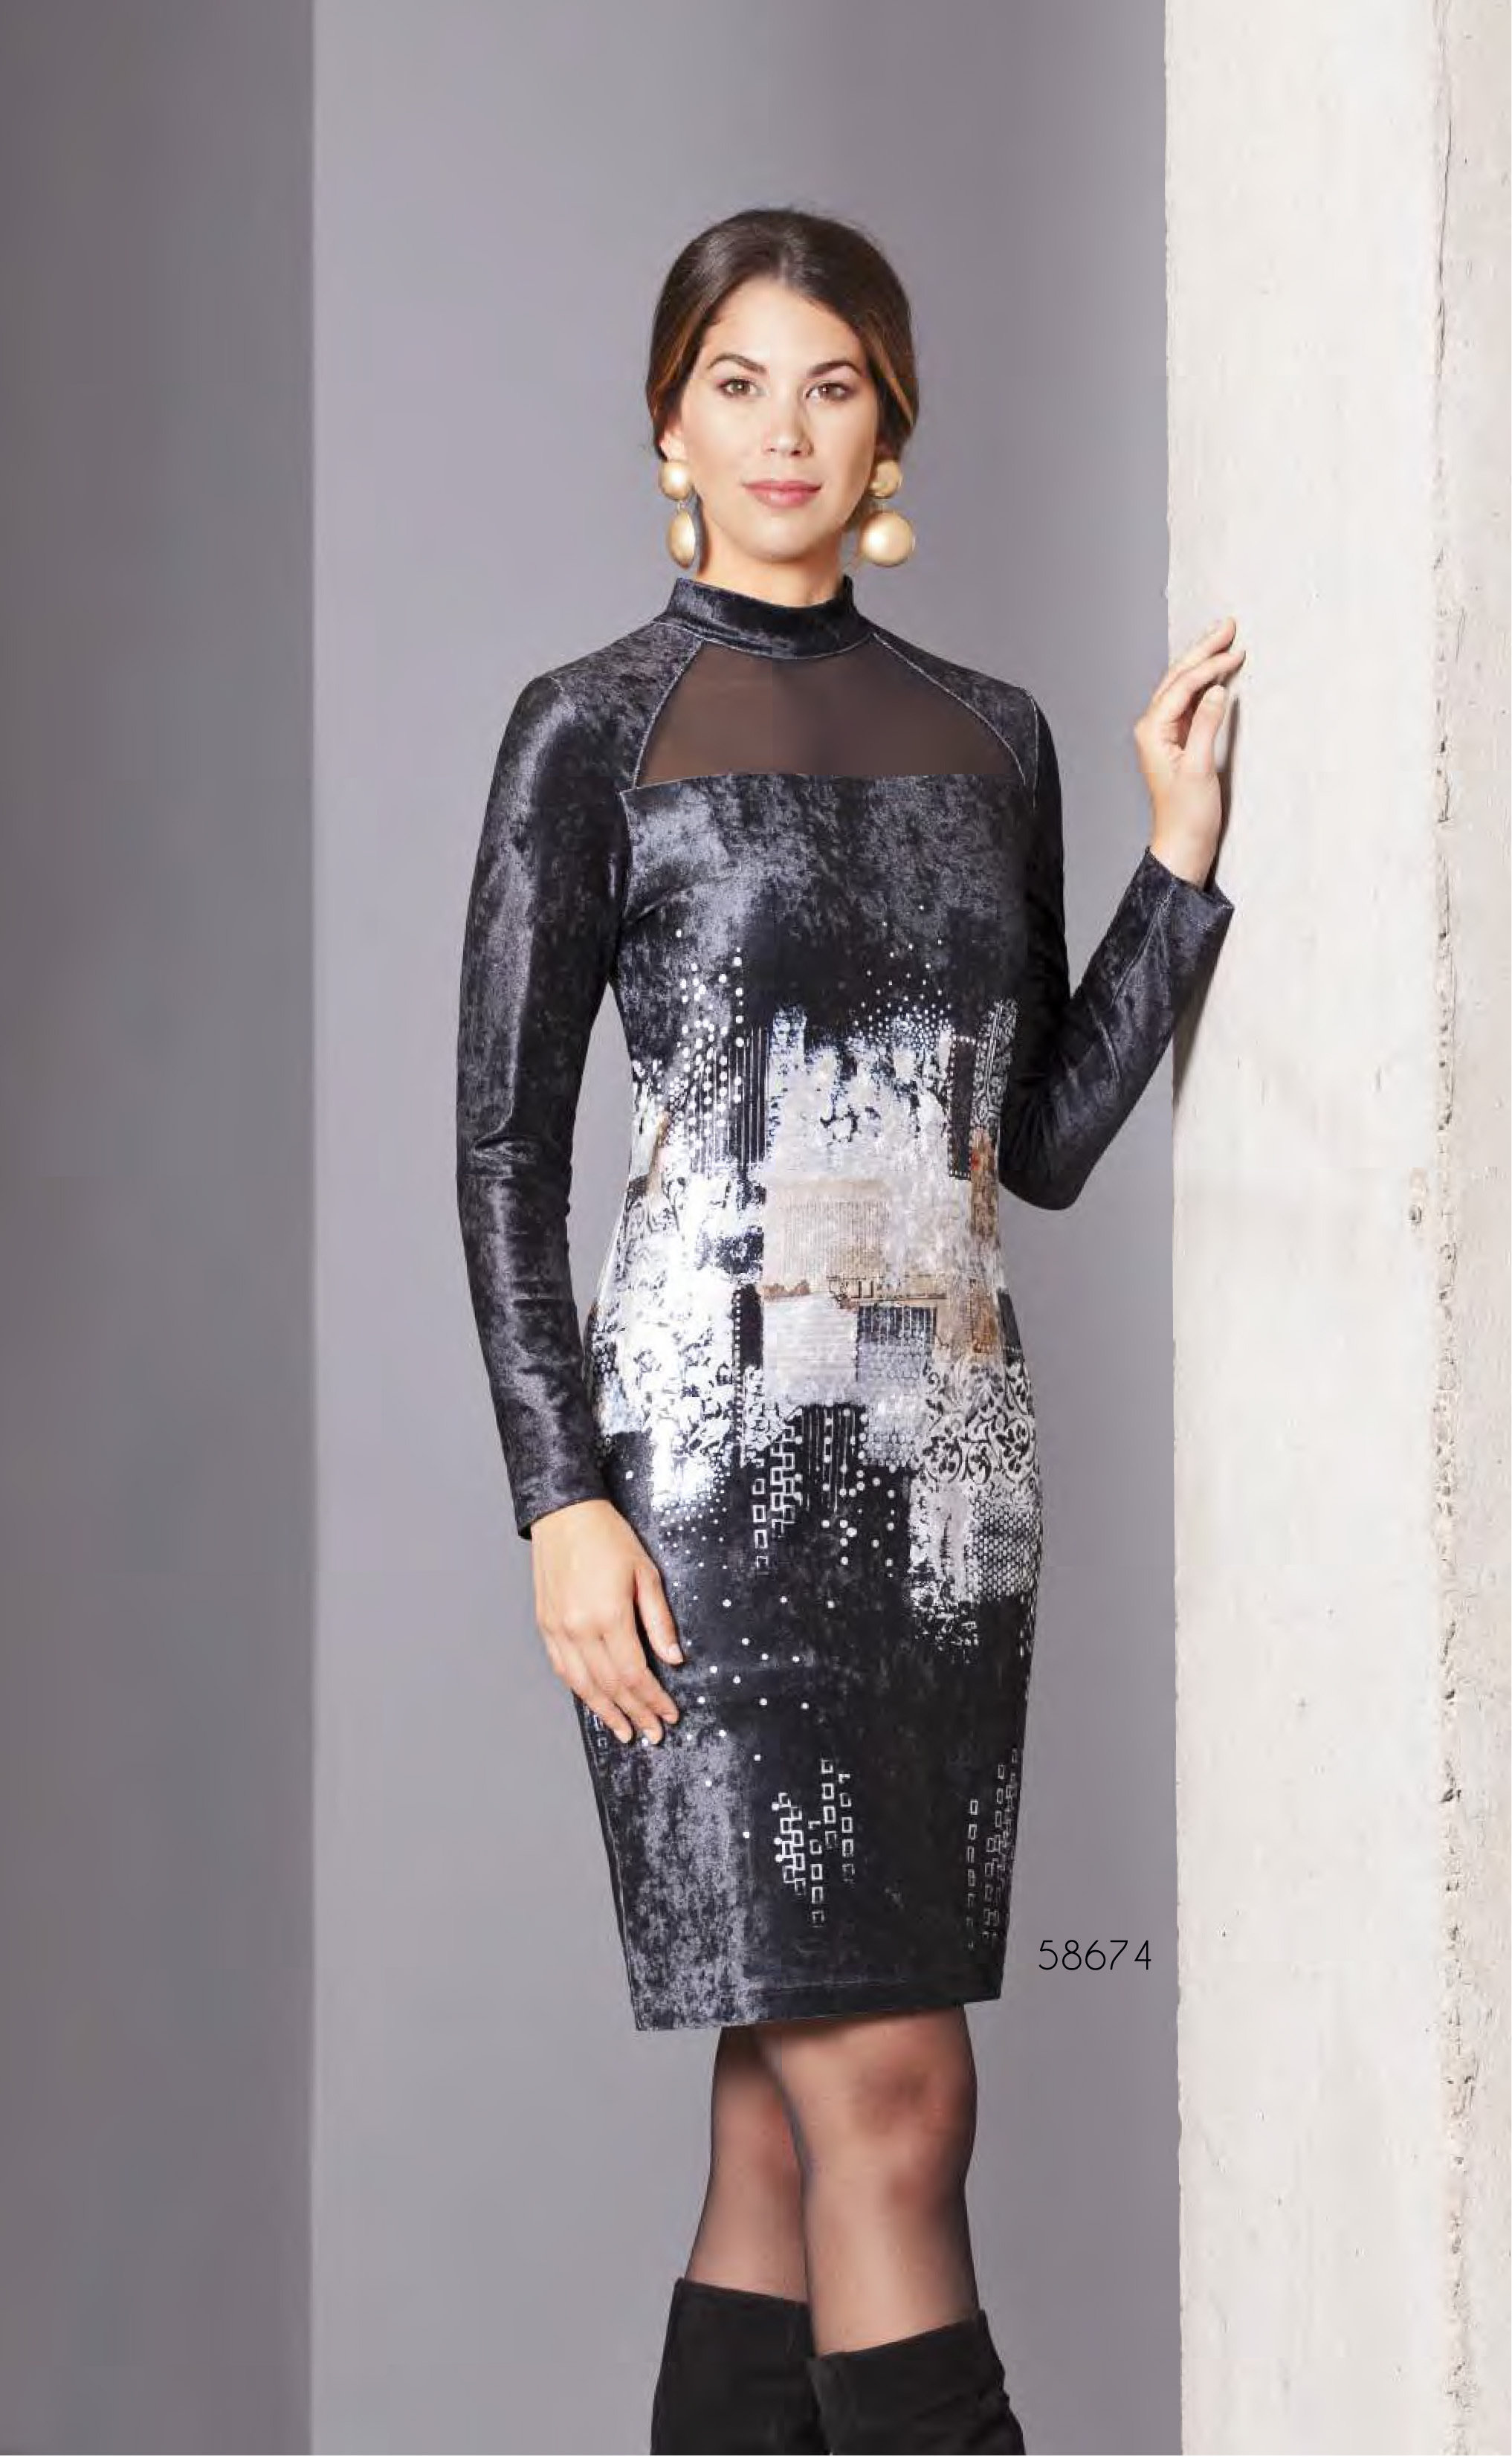 Simply Art Dolcezza: Explosion of Crystals Abstract Art Velvet Dress (1 Left!) DOLCEZZA_SIMPLYART_58674_N3